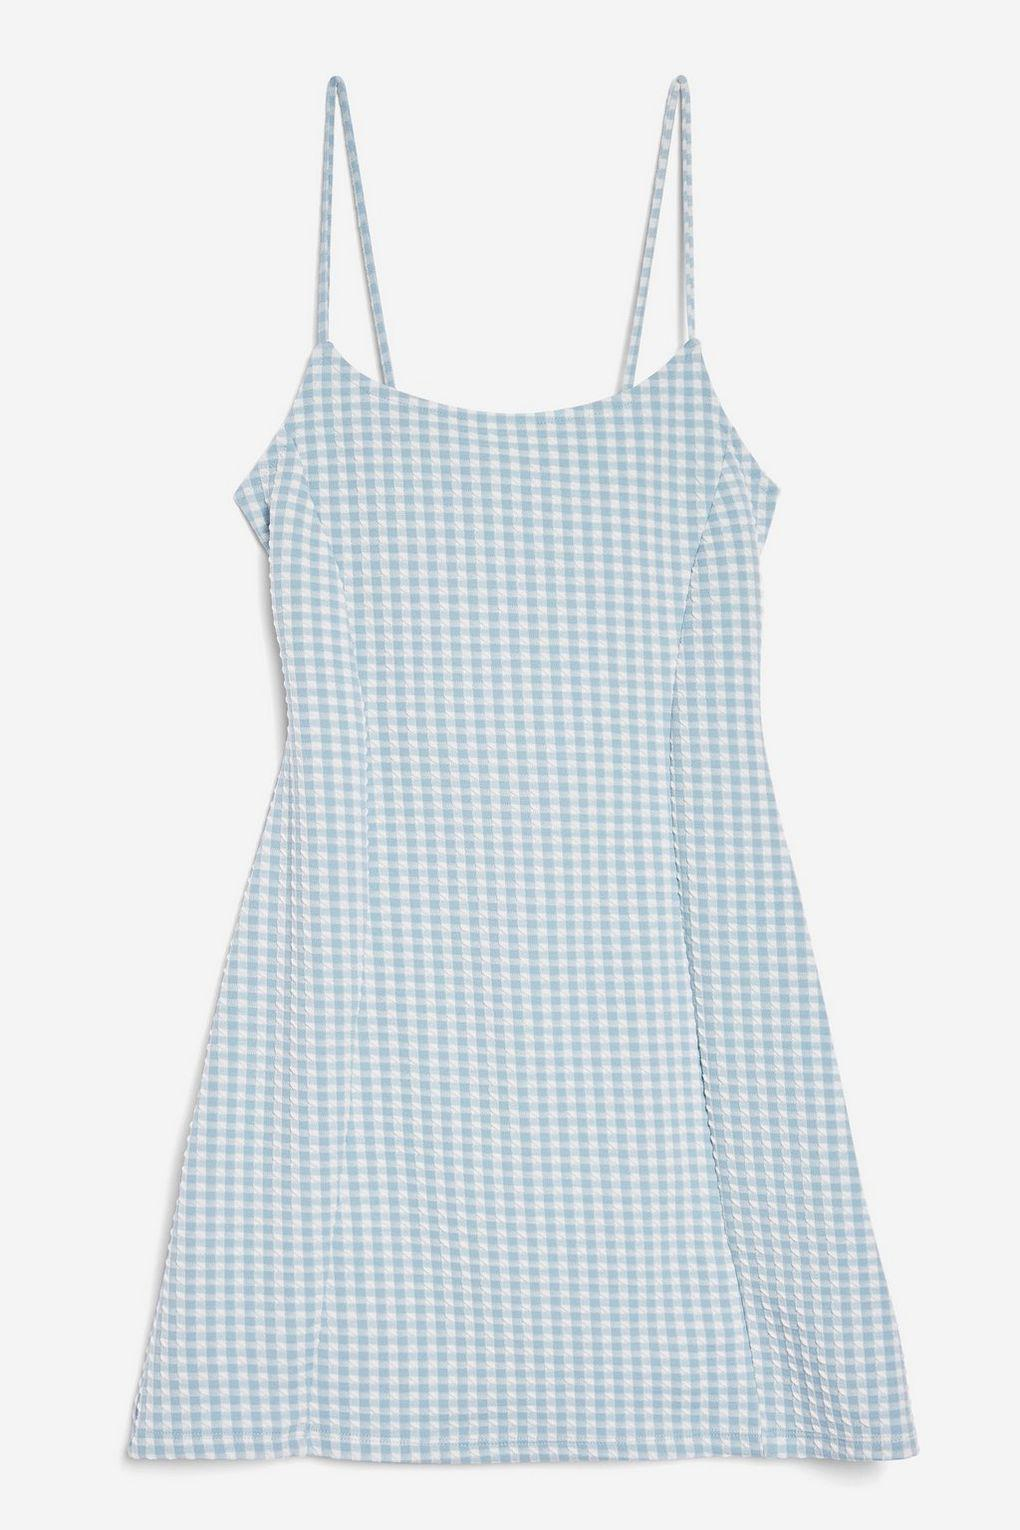 3ae18d6cd73af TOPSHOP Petite Gingham Mini Pinafore Dress in Blue - Lyst